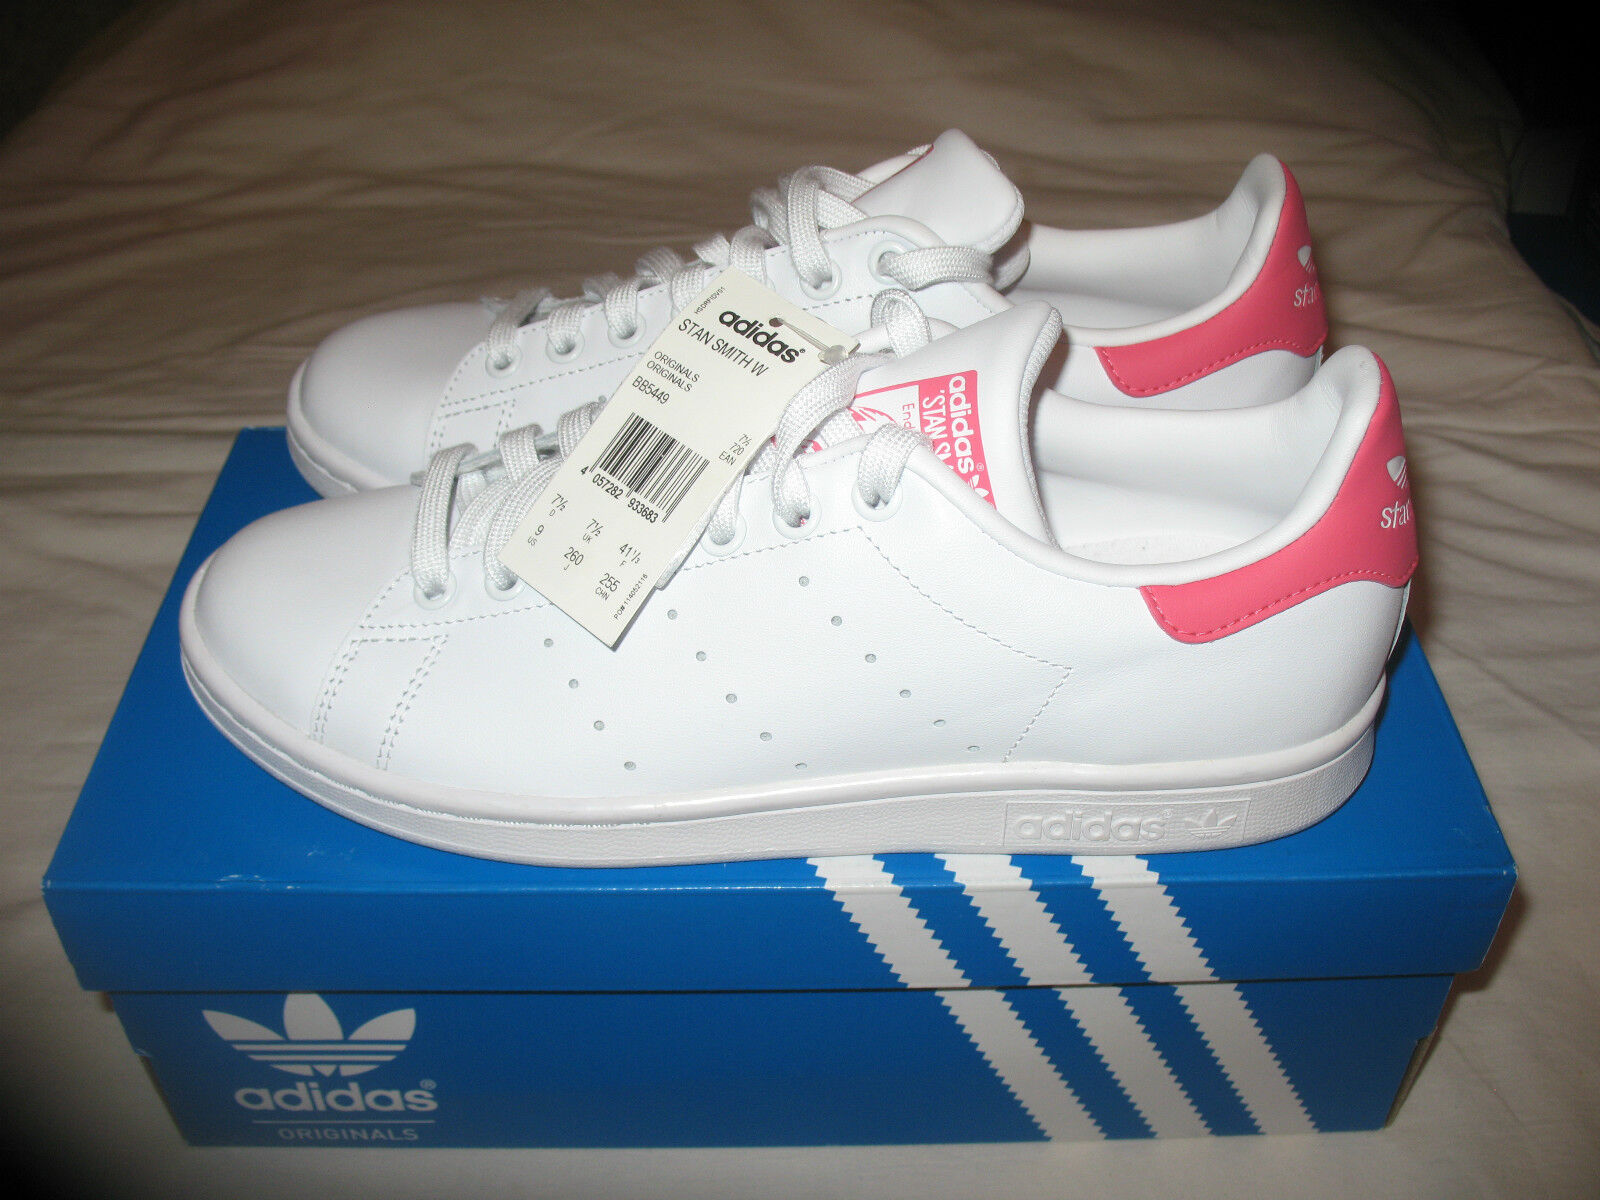 NEW Adidas Originals Stan Smith W blanc/rose8 US 9.5 F 42 BB5449